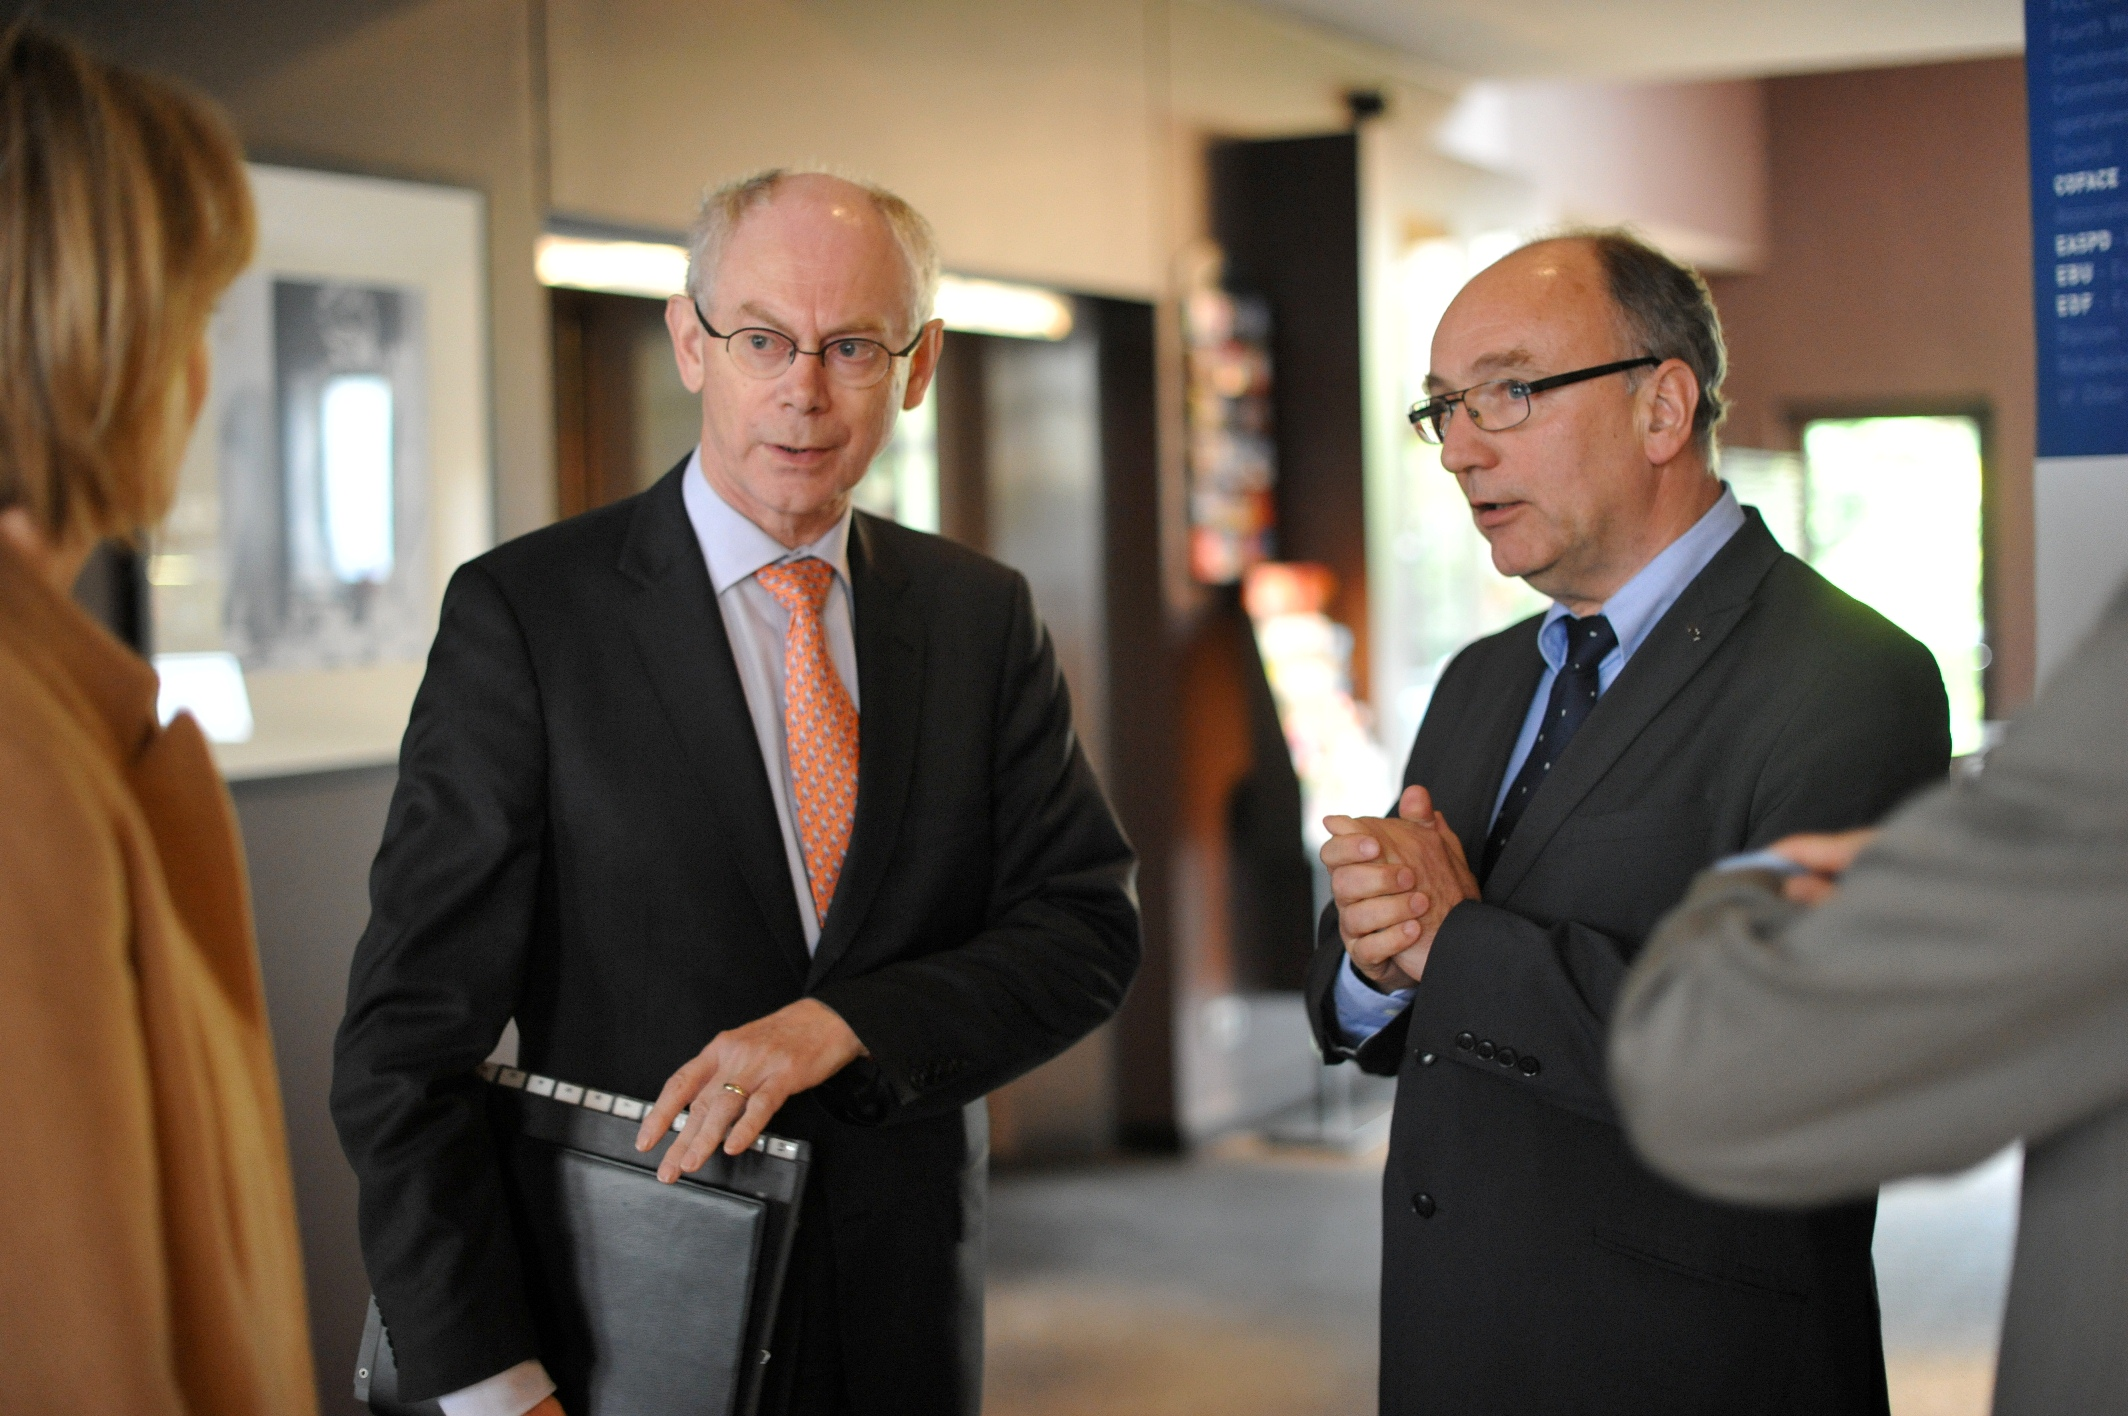 Herman Van Rompuy, European Council president, with Conny Reuter of SOLIDAR [April 2012; Social Platform/Flickr]